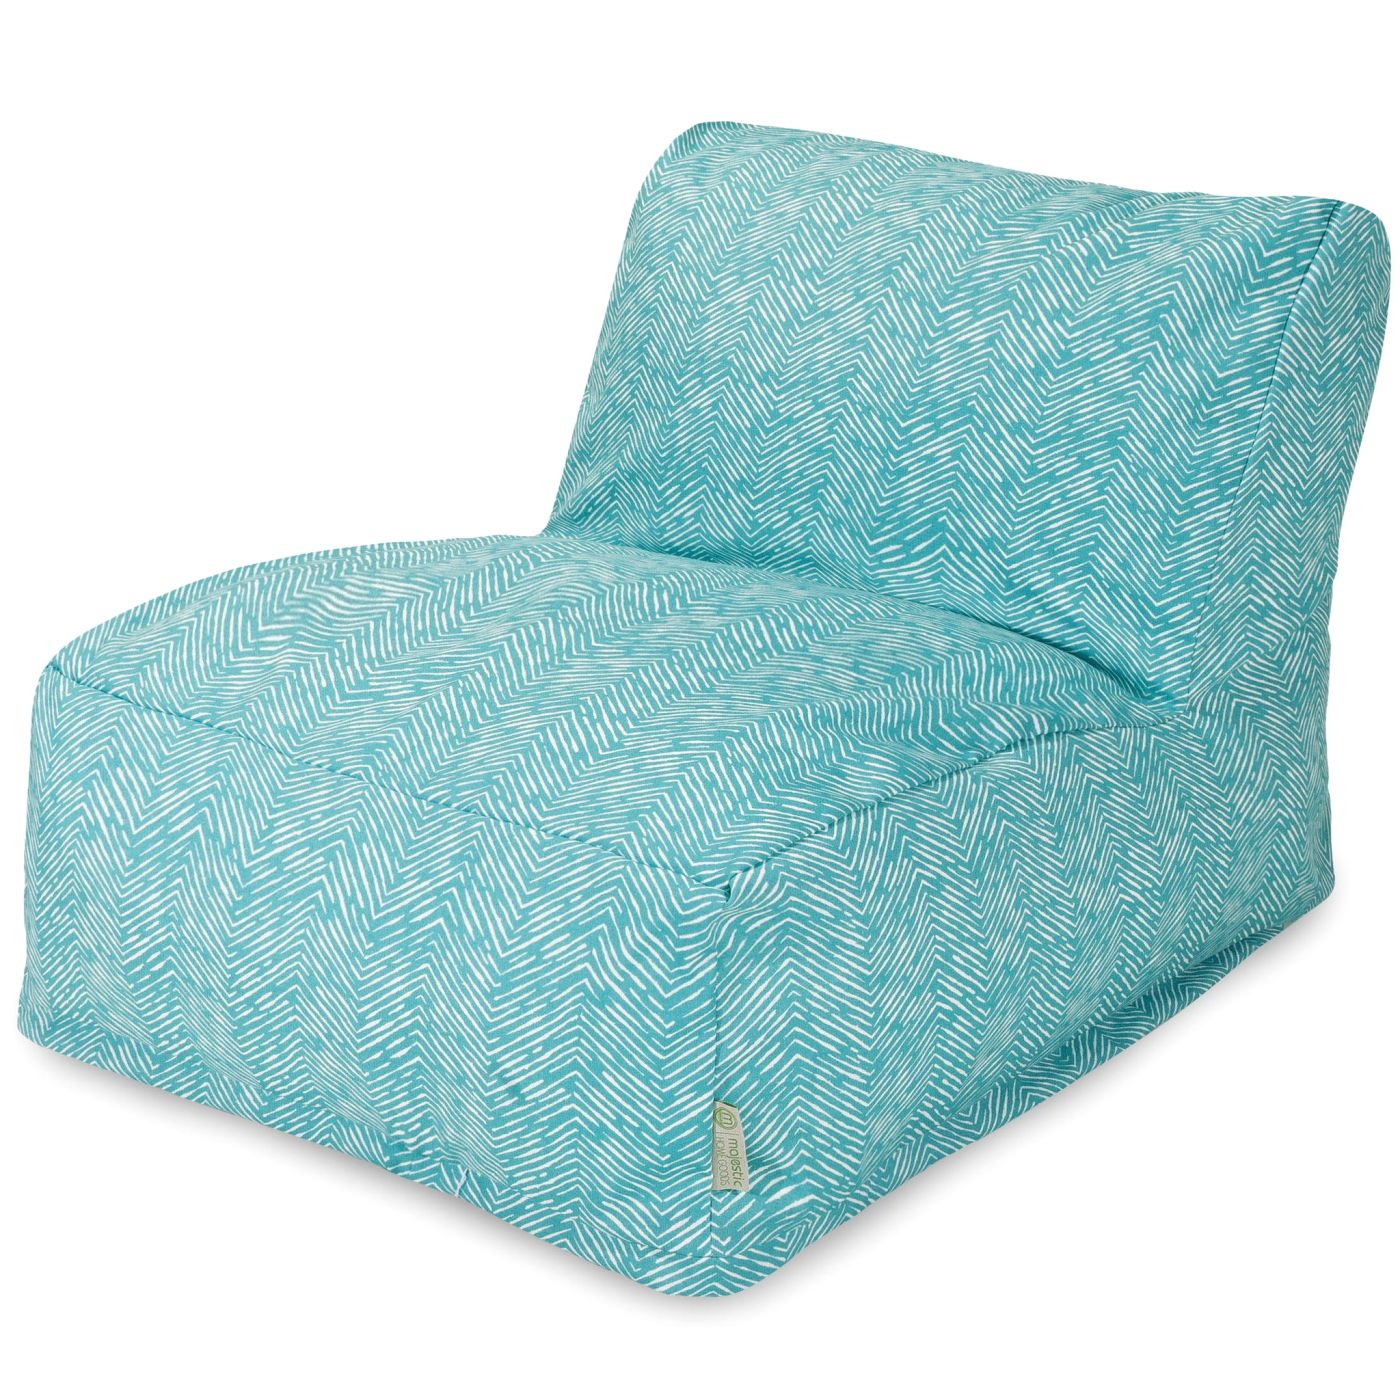 amazing deal on majestic home 85907220393 teal navajo bean bag chair lounger at contemporary. Black Bedroom Furniture Sets. Home Design Ideas